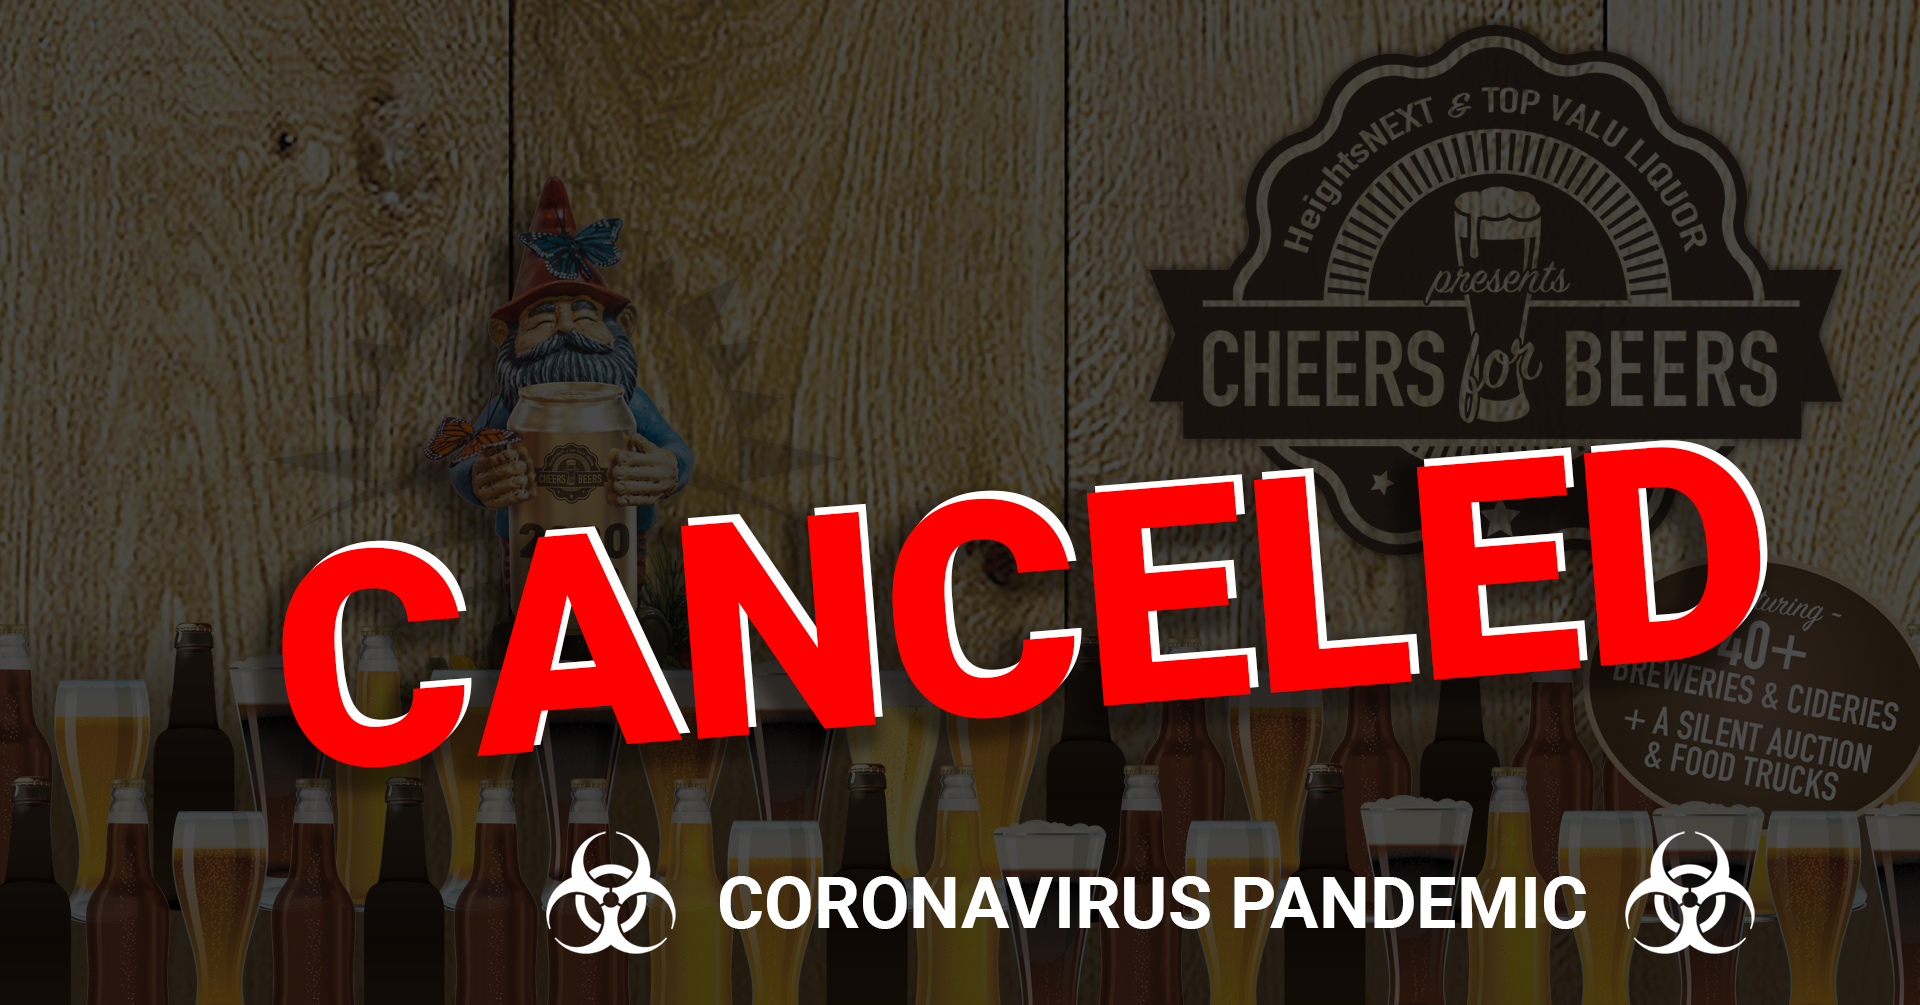 Cheers for Beers 2020 is canceled due to the coronavirus pandemic.